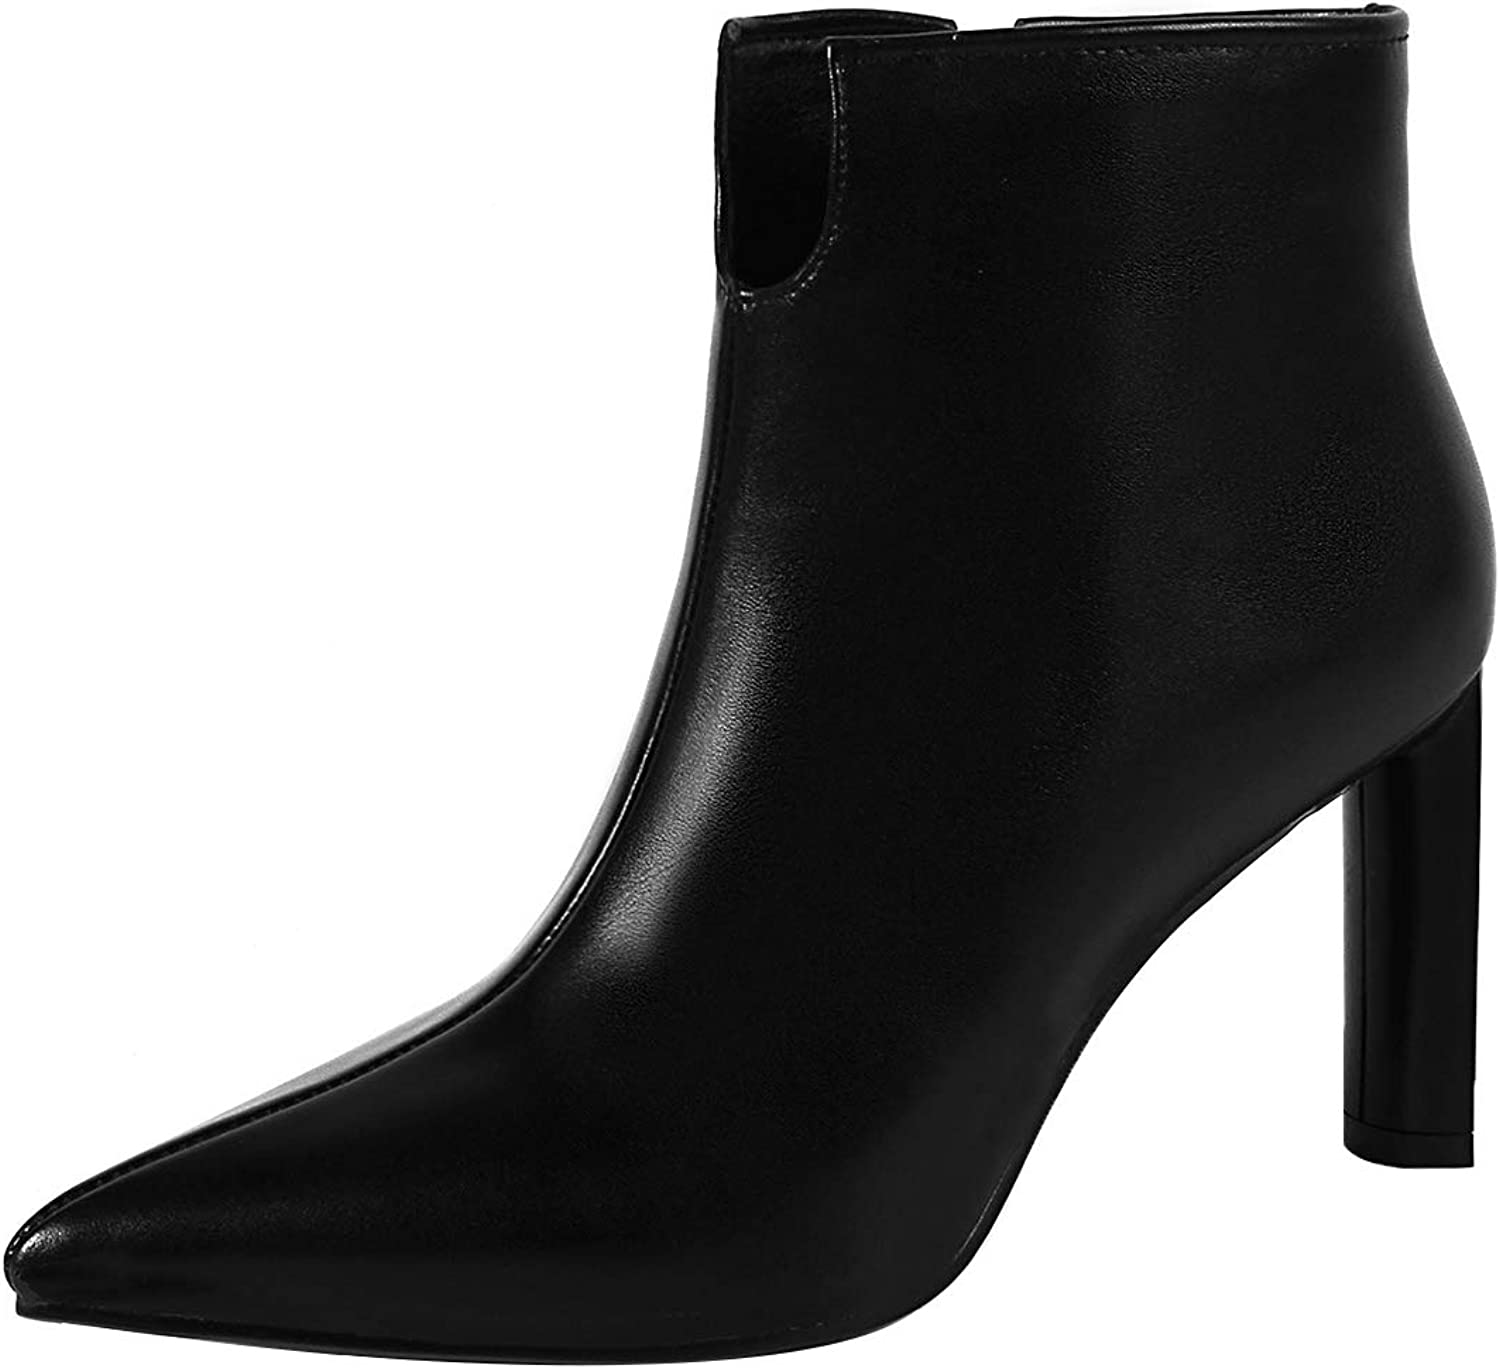 Eithy Women's Shabus Stiletto Ankle-high Zipper Leather Boots